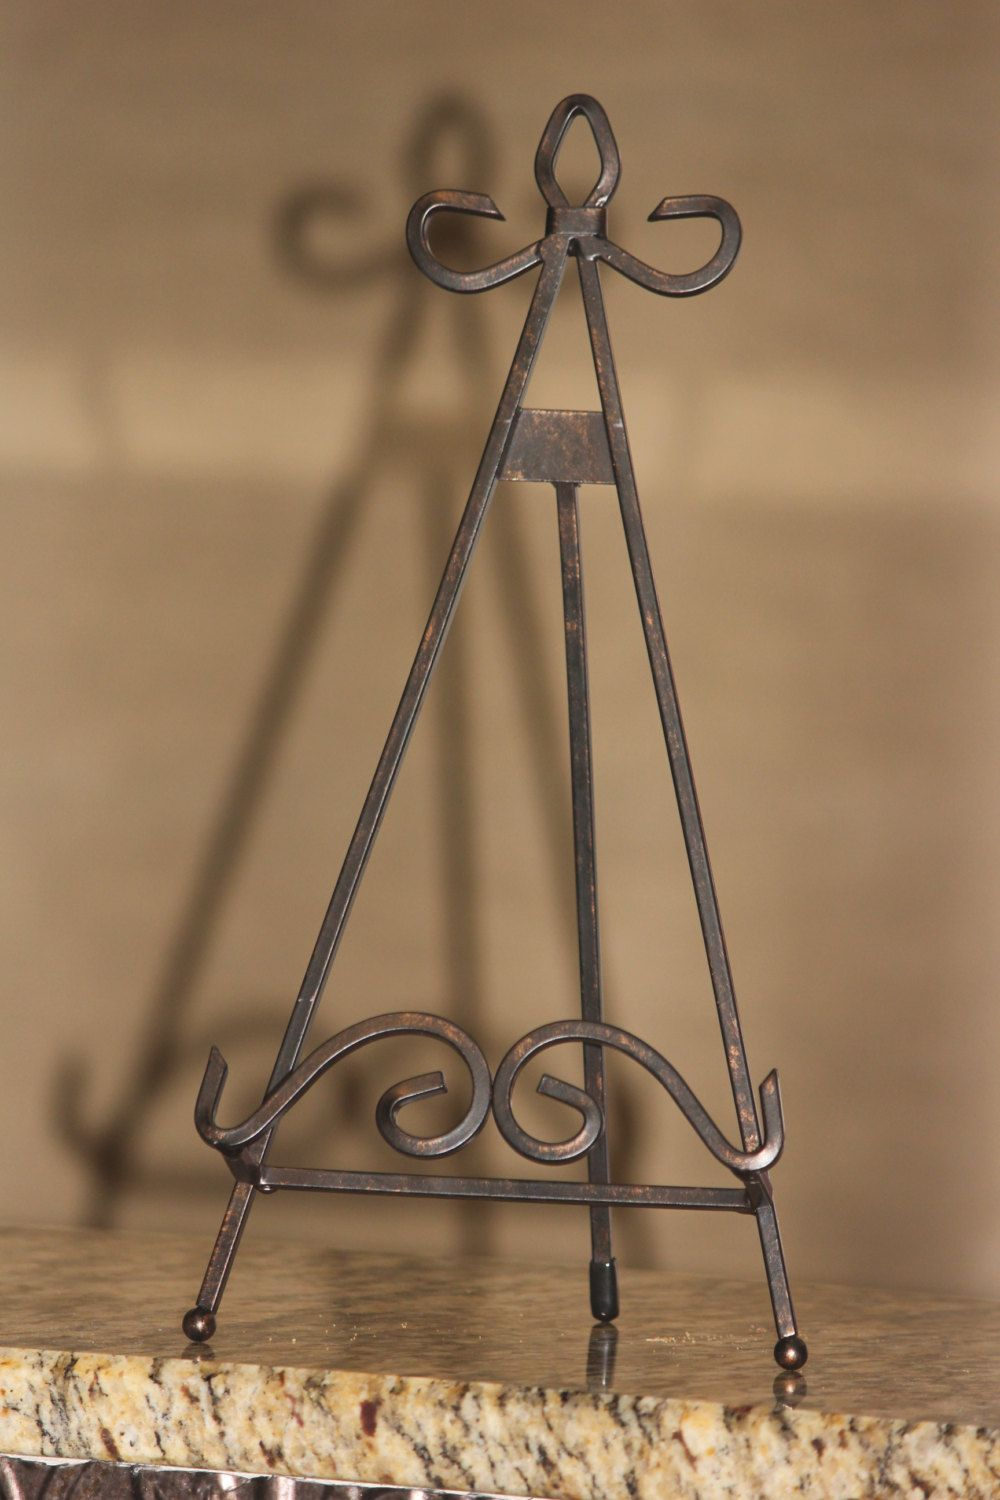 Wrought Iron Decorative Easel Plate Stand 14.25 by MREdesignsLLC $11.00 & Wrought Iron Decorative Easel Plate Stand 14.25